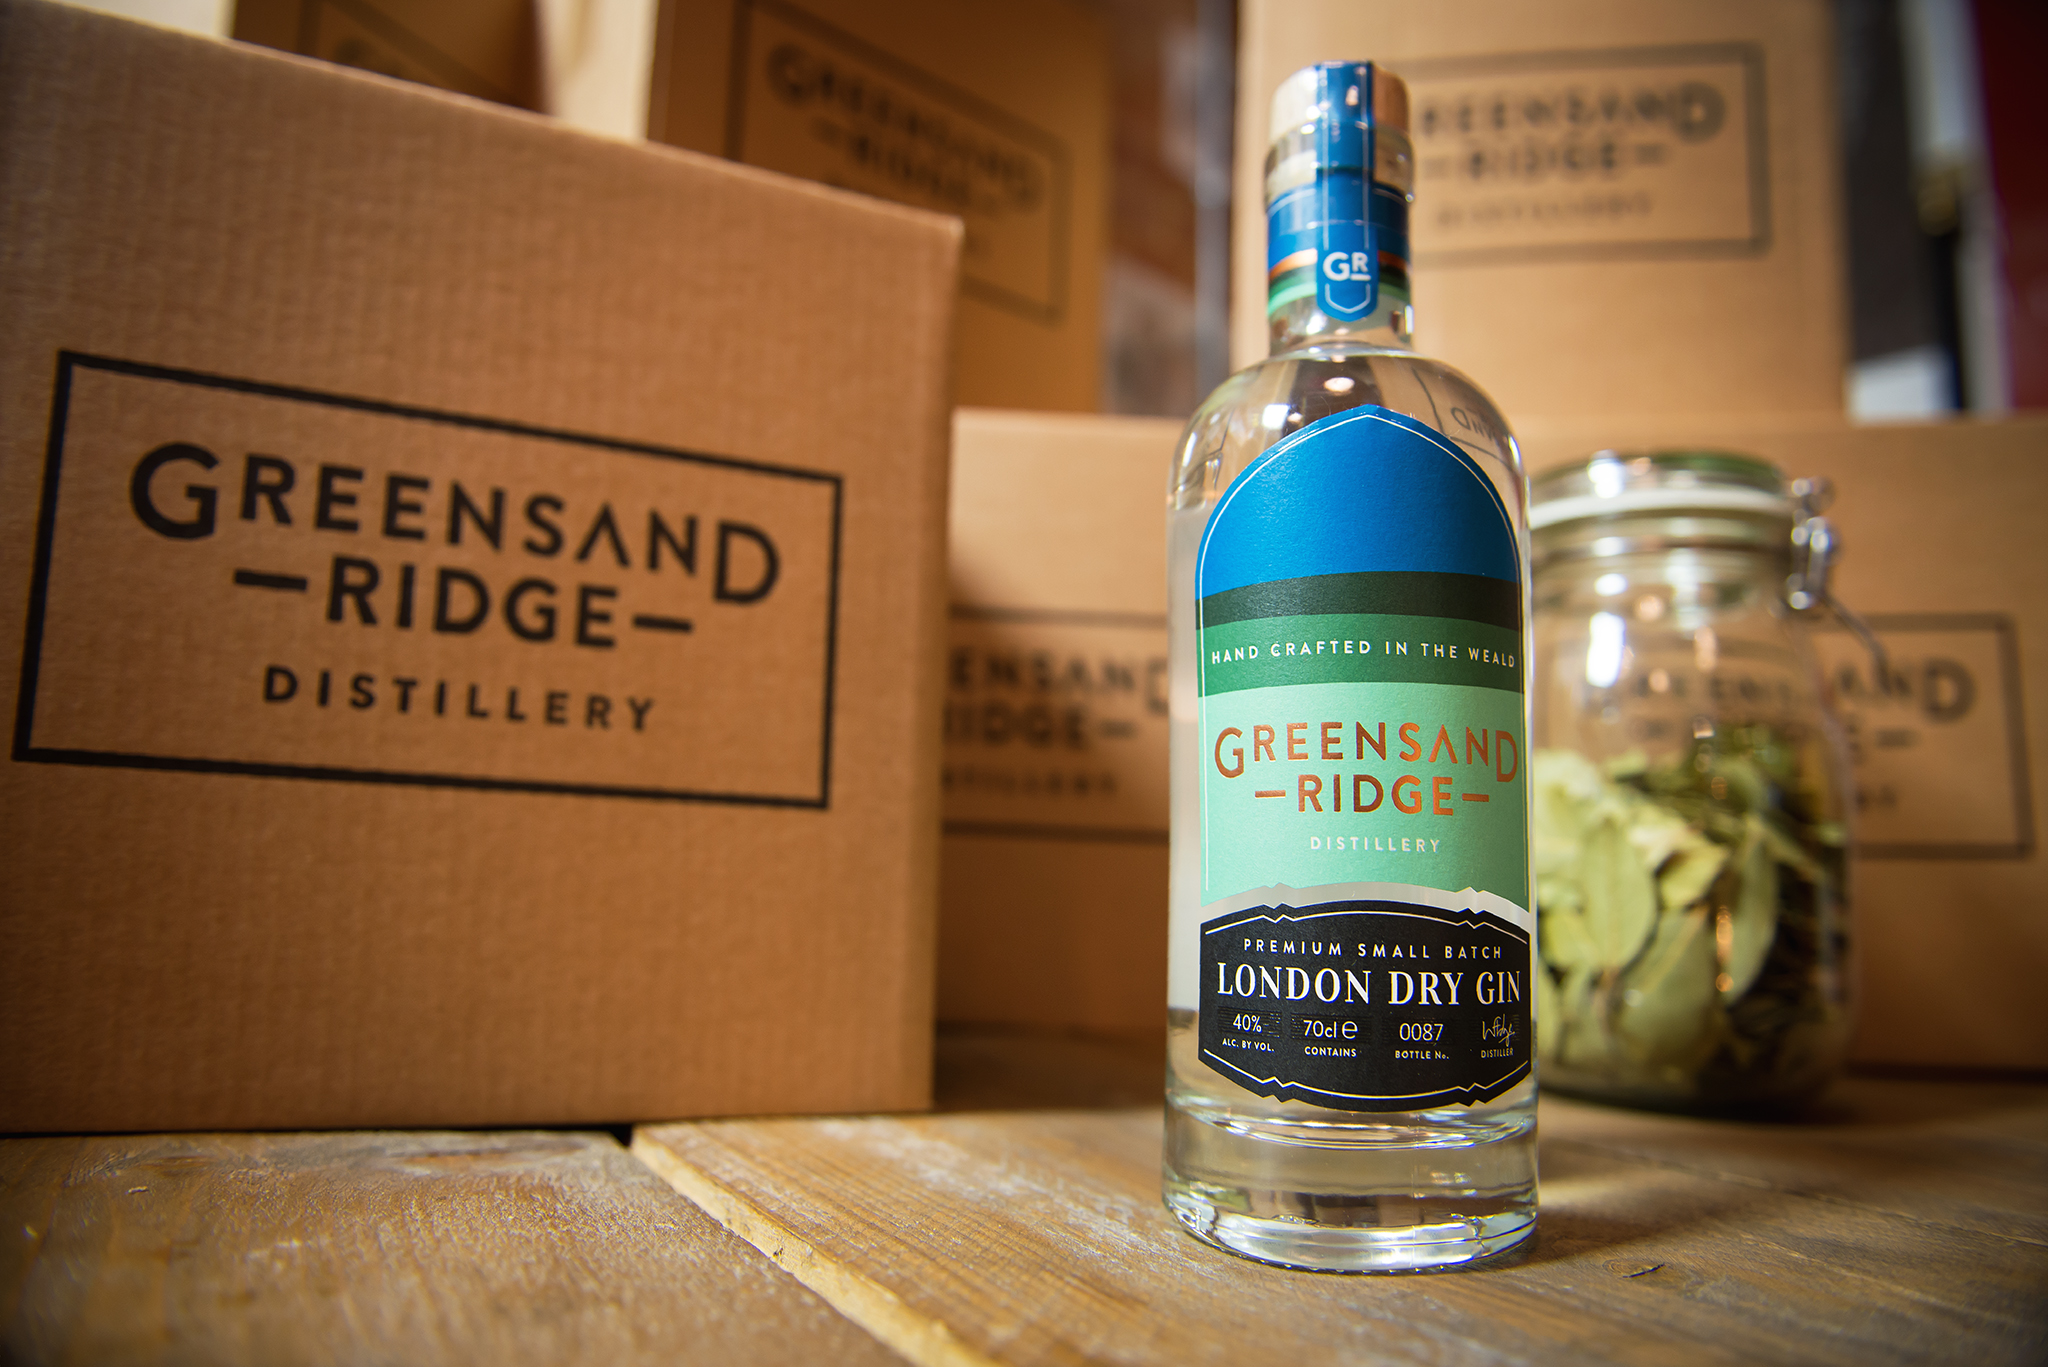 Greensand Ridge London Dry Gin